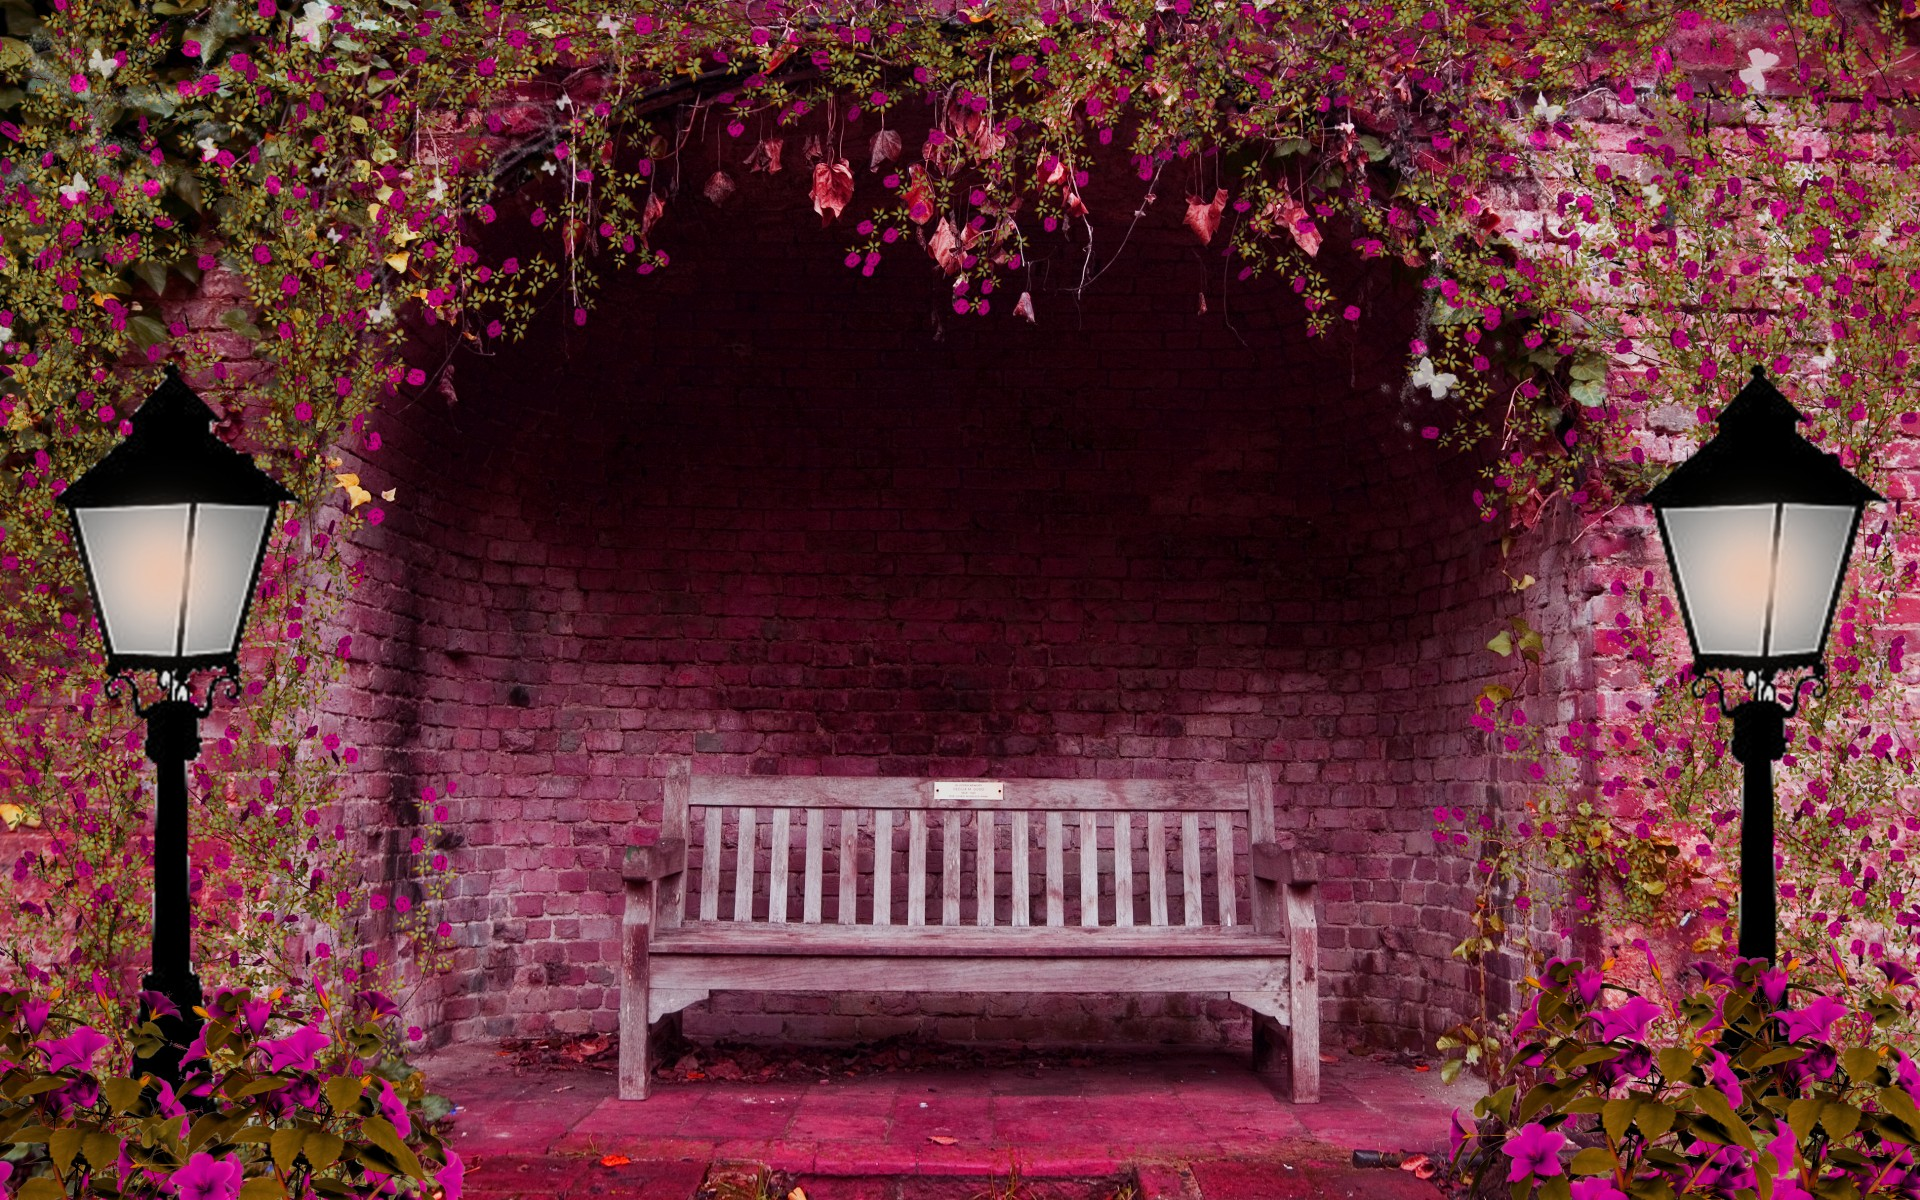 Bench And Pink Flowers Full HD Wallpaper And Background - Colorful flower garden background